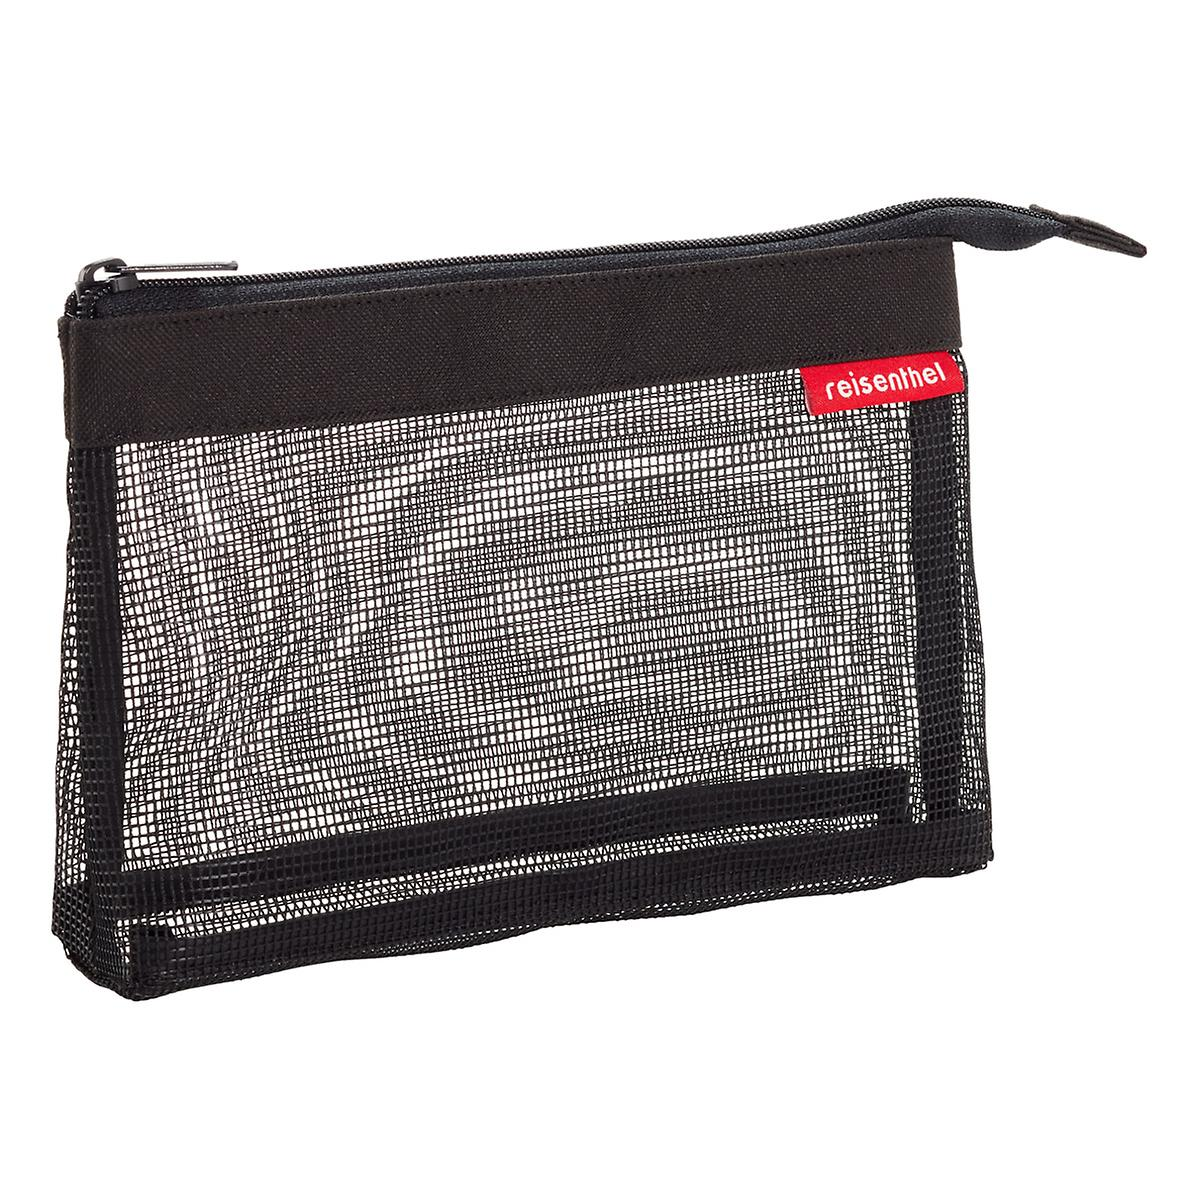 Zippered Mesh Pouch By Reisenthel The Container Store